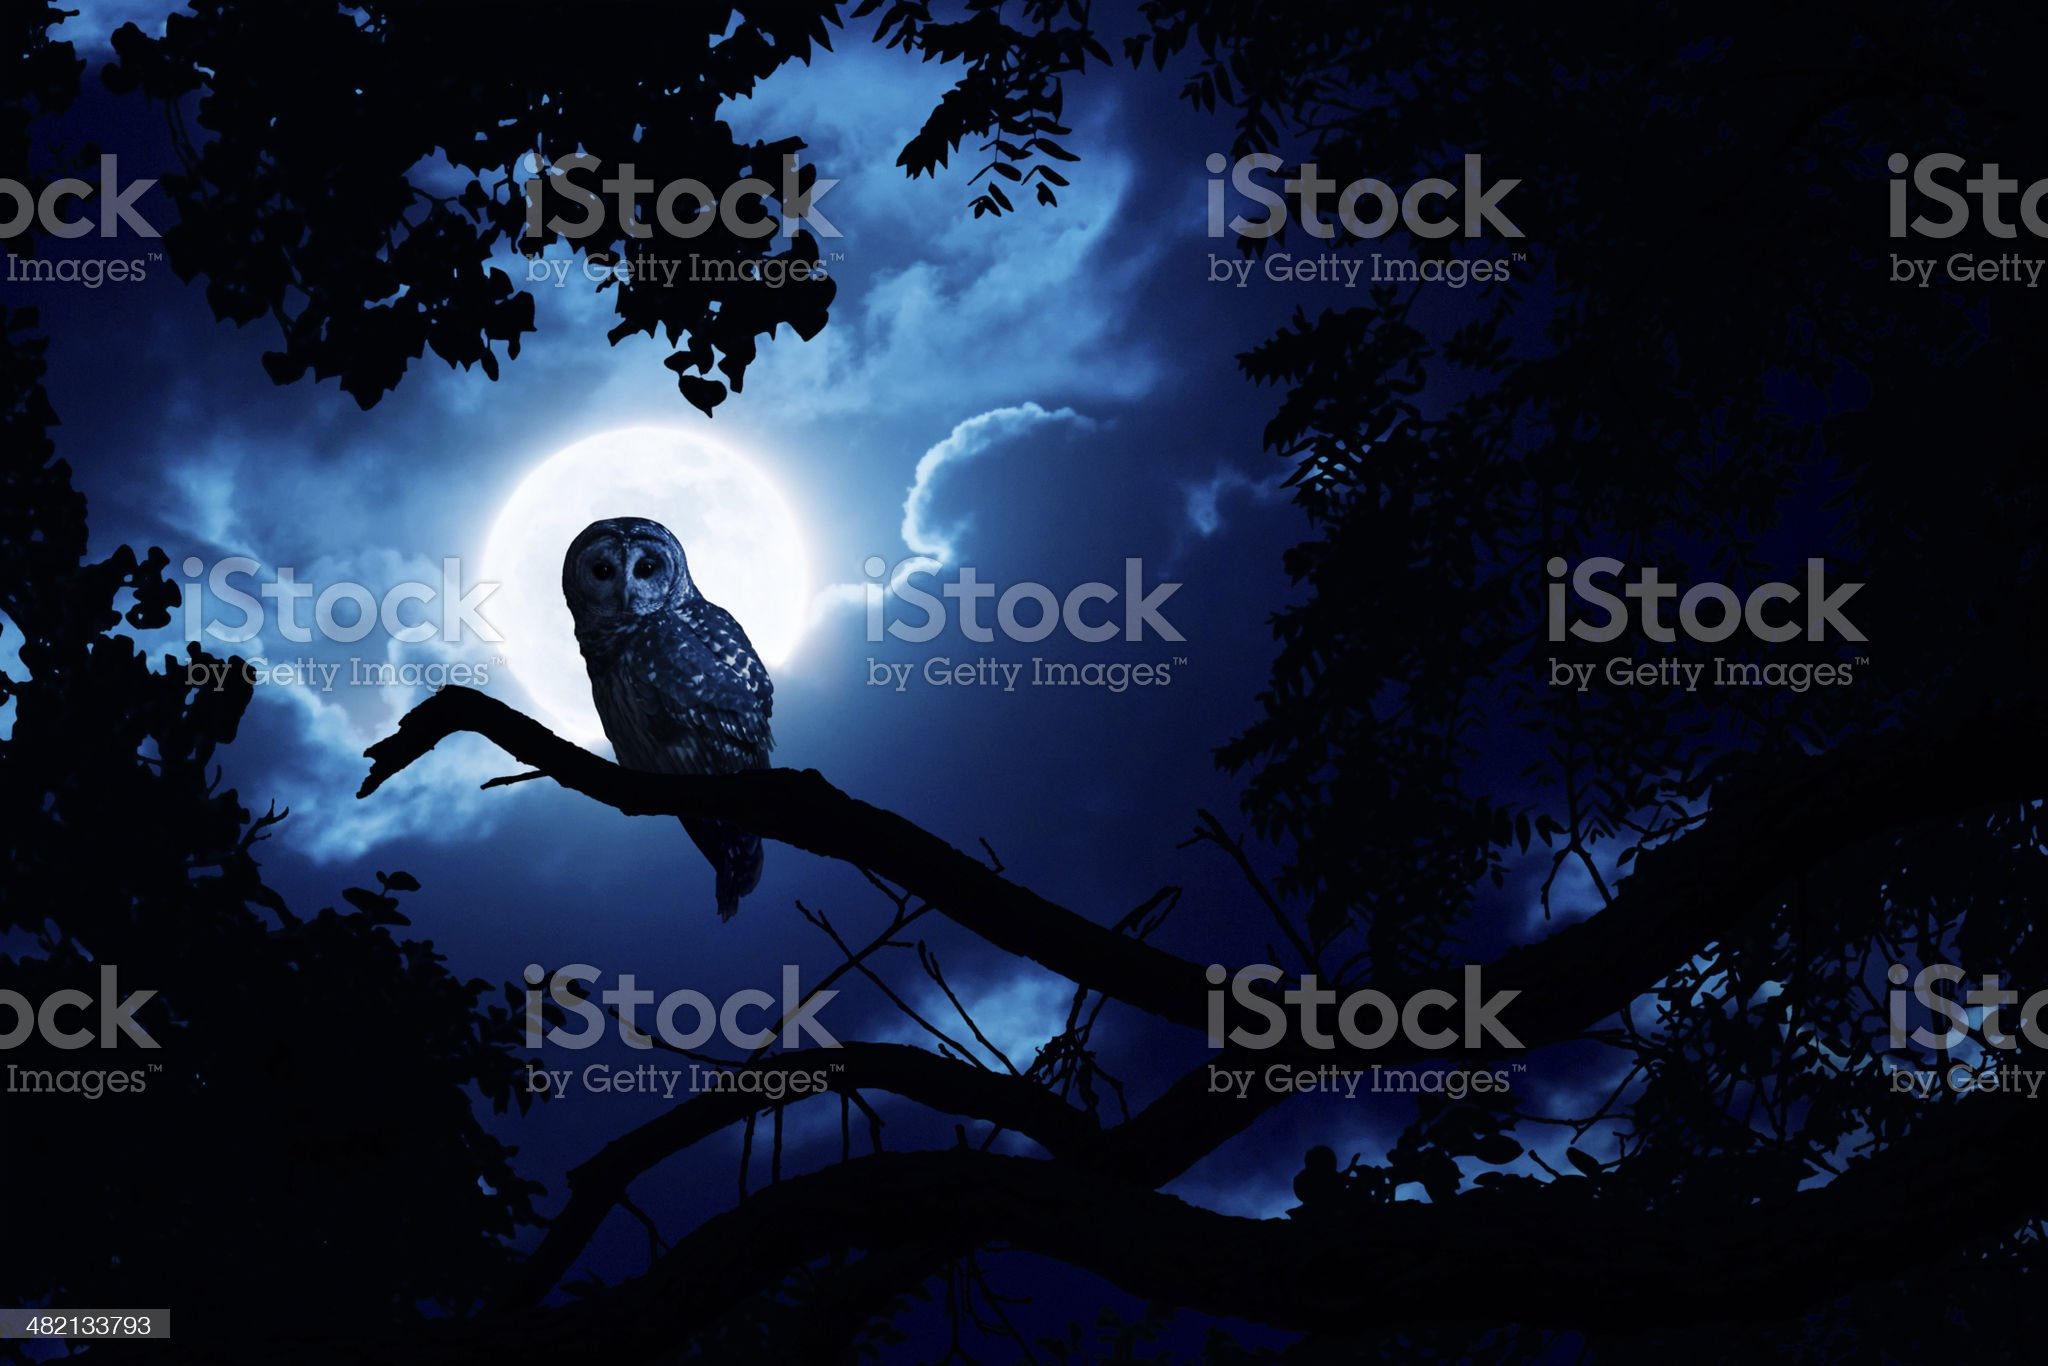 Owl Watches Intently Illuminated By Full Moon royalty-free stock photo